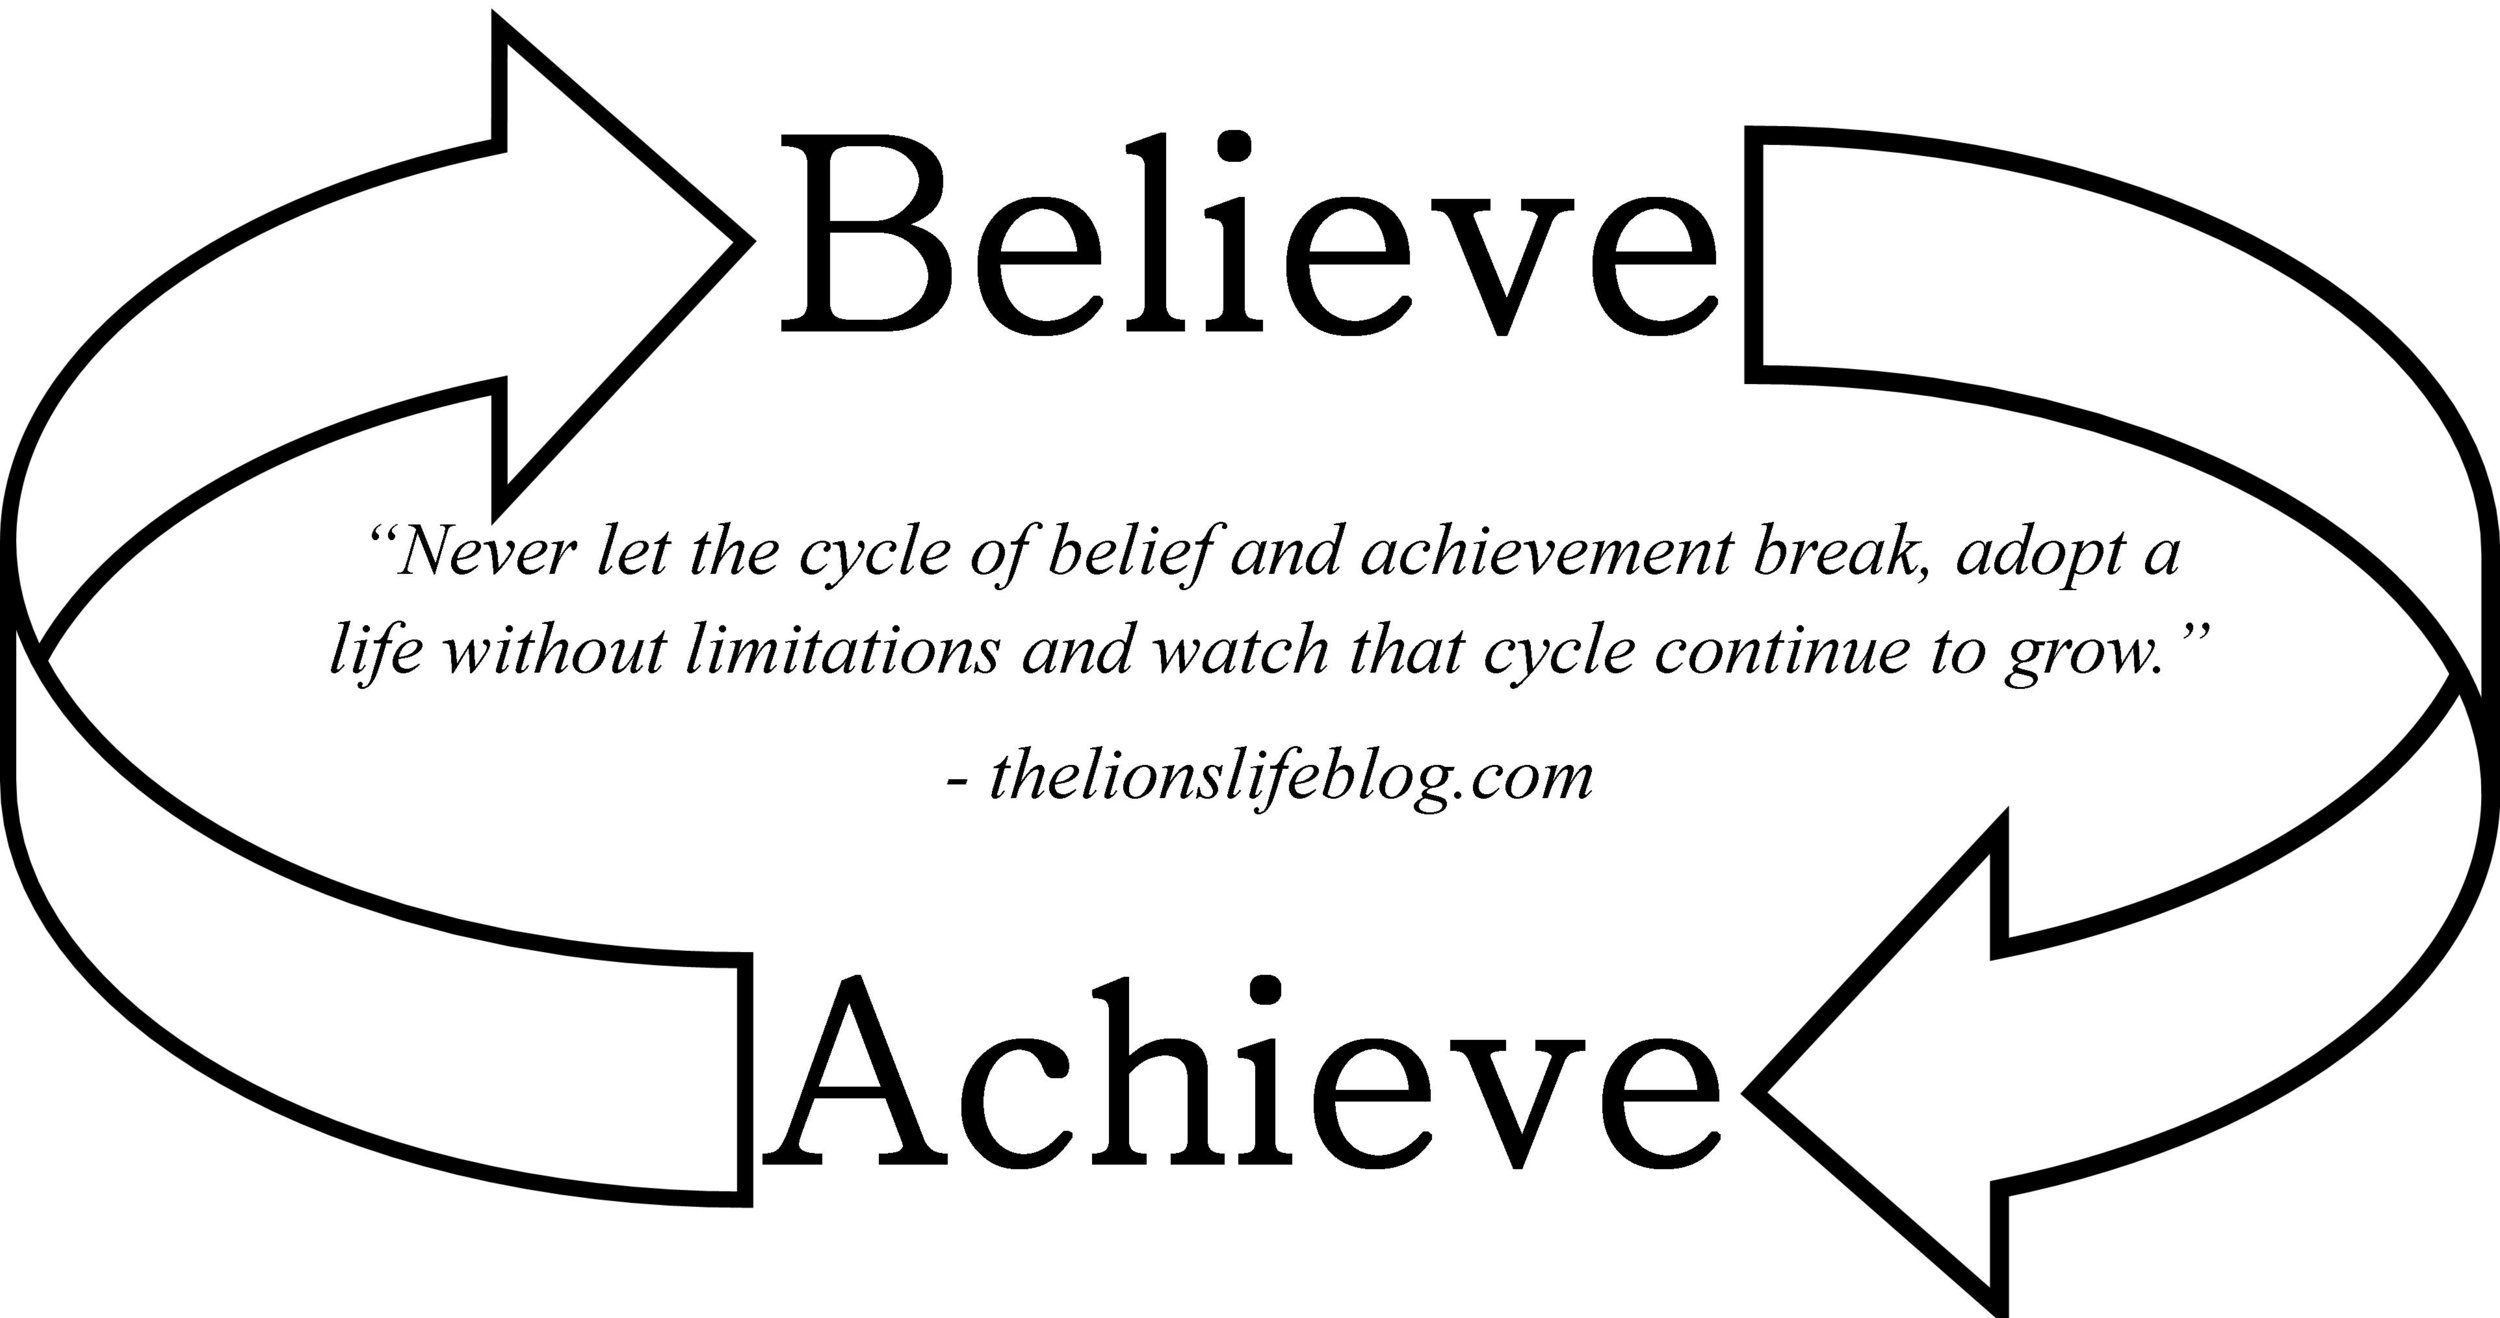 Belief and Achievement Cycle